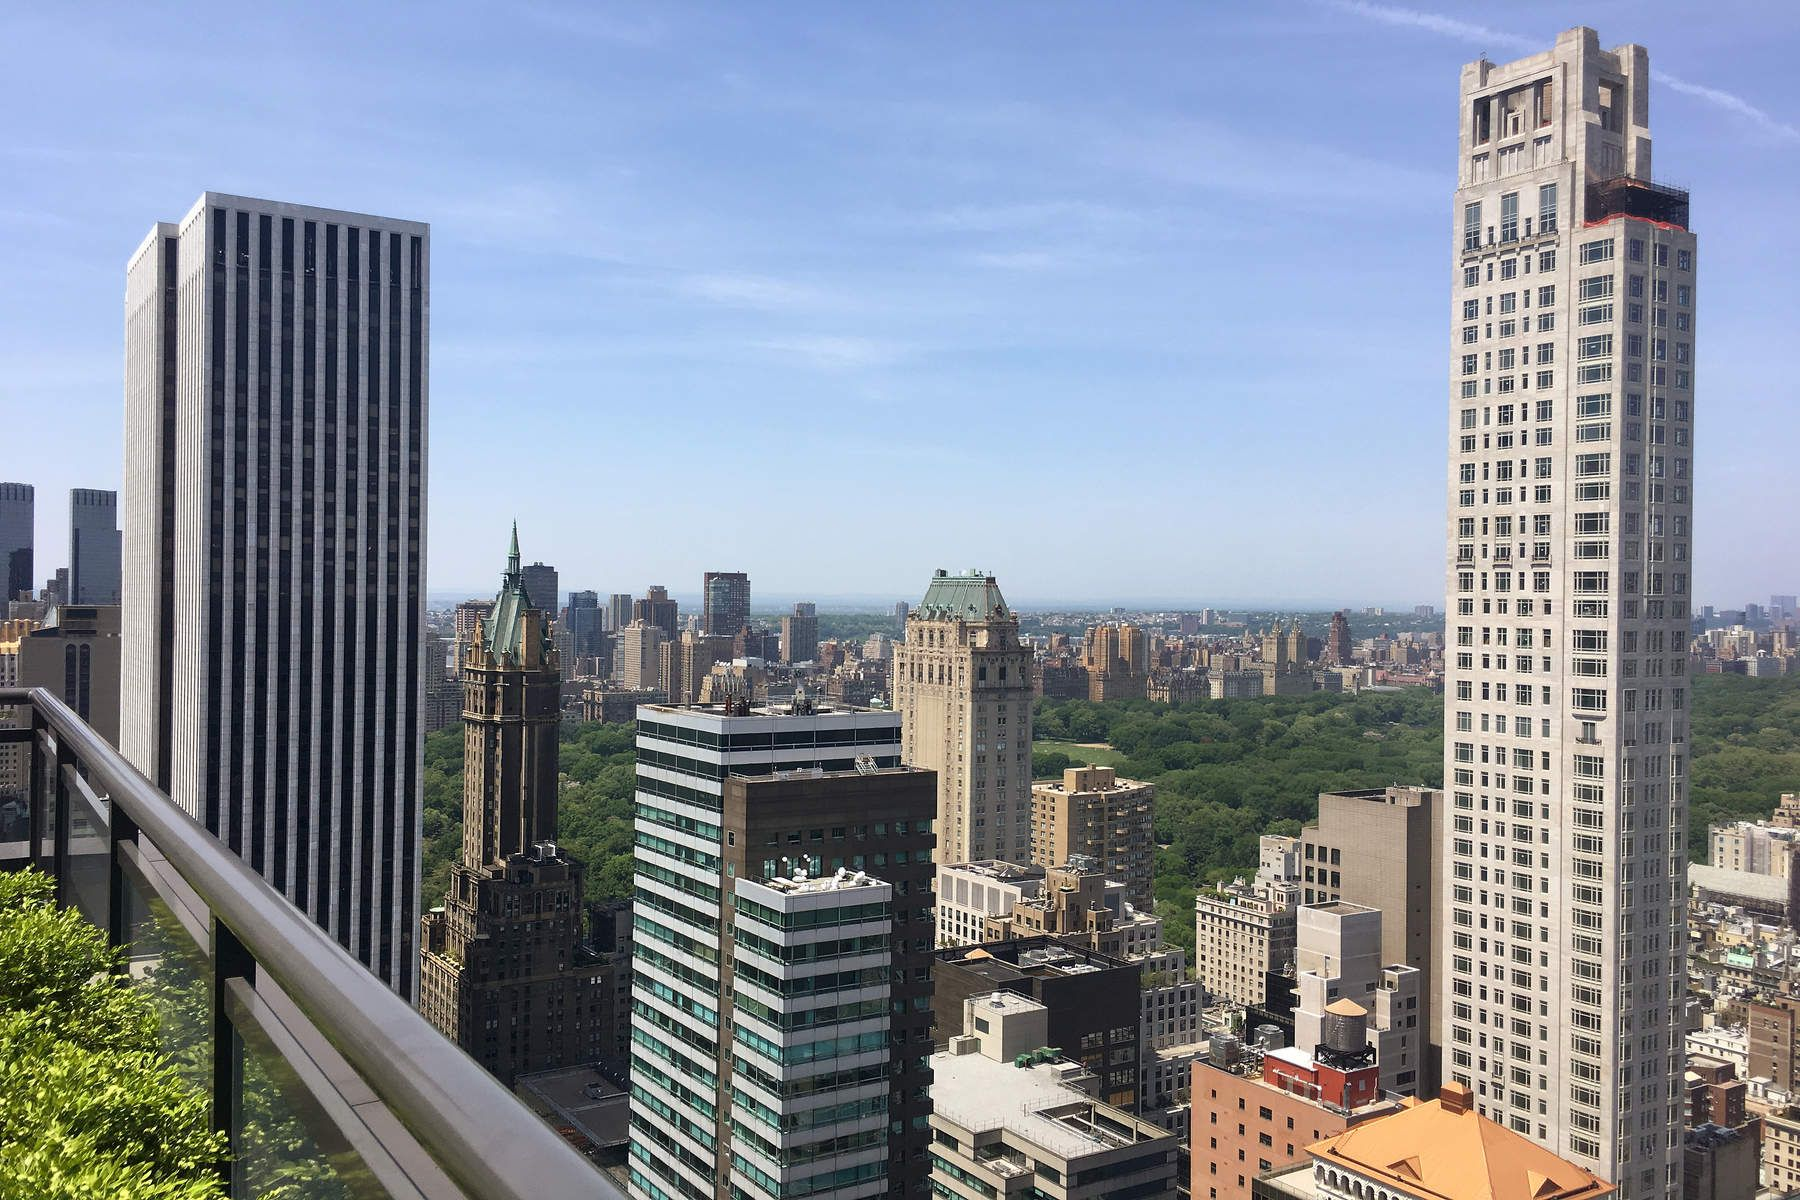 Martine Capdevielle_Luxury Real Estate NYC_117 EAST 57TH STREET APT 34h6.jpg